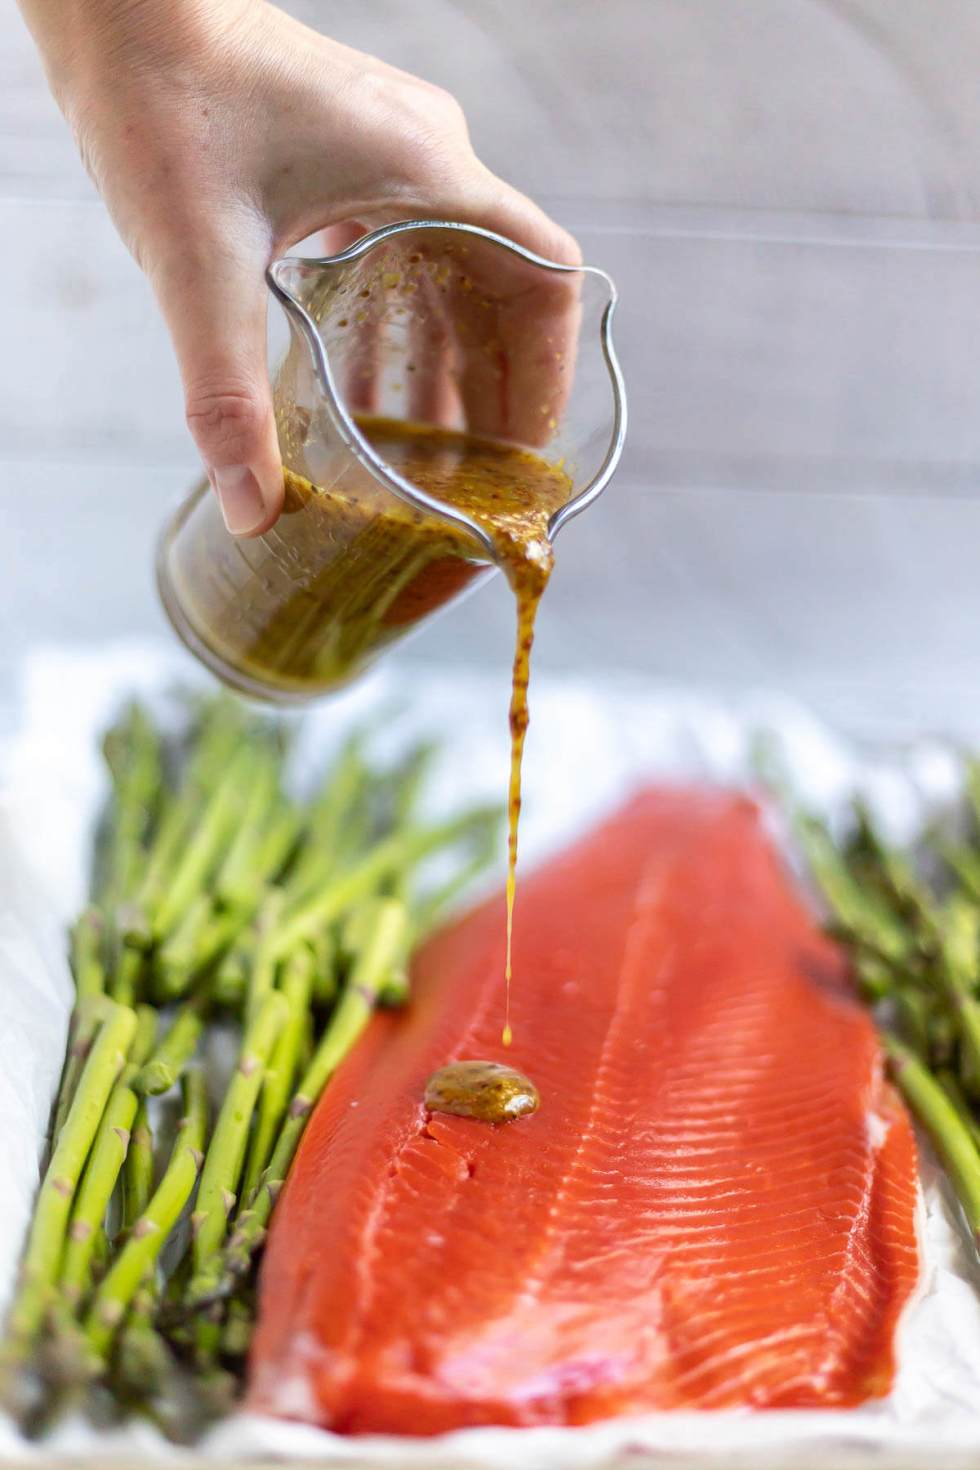 maple mustard sauce being drizzled over salmon and asparagus